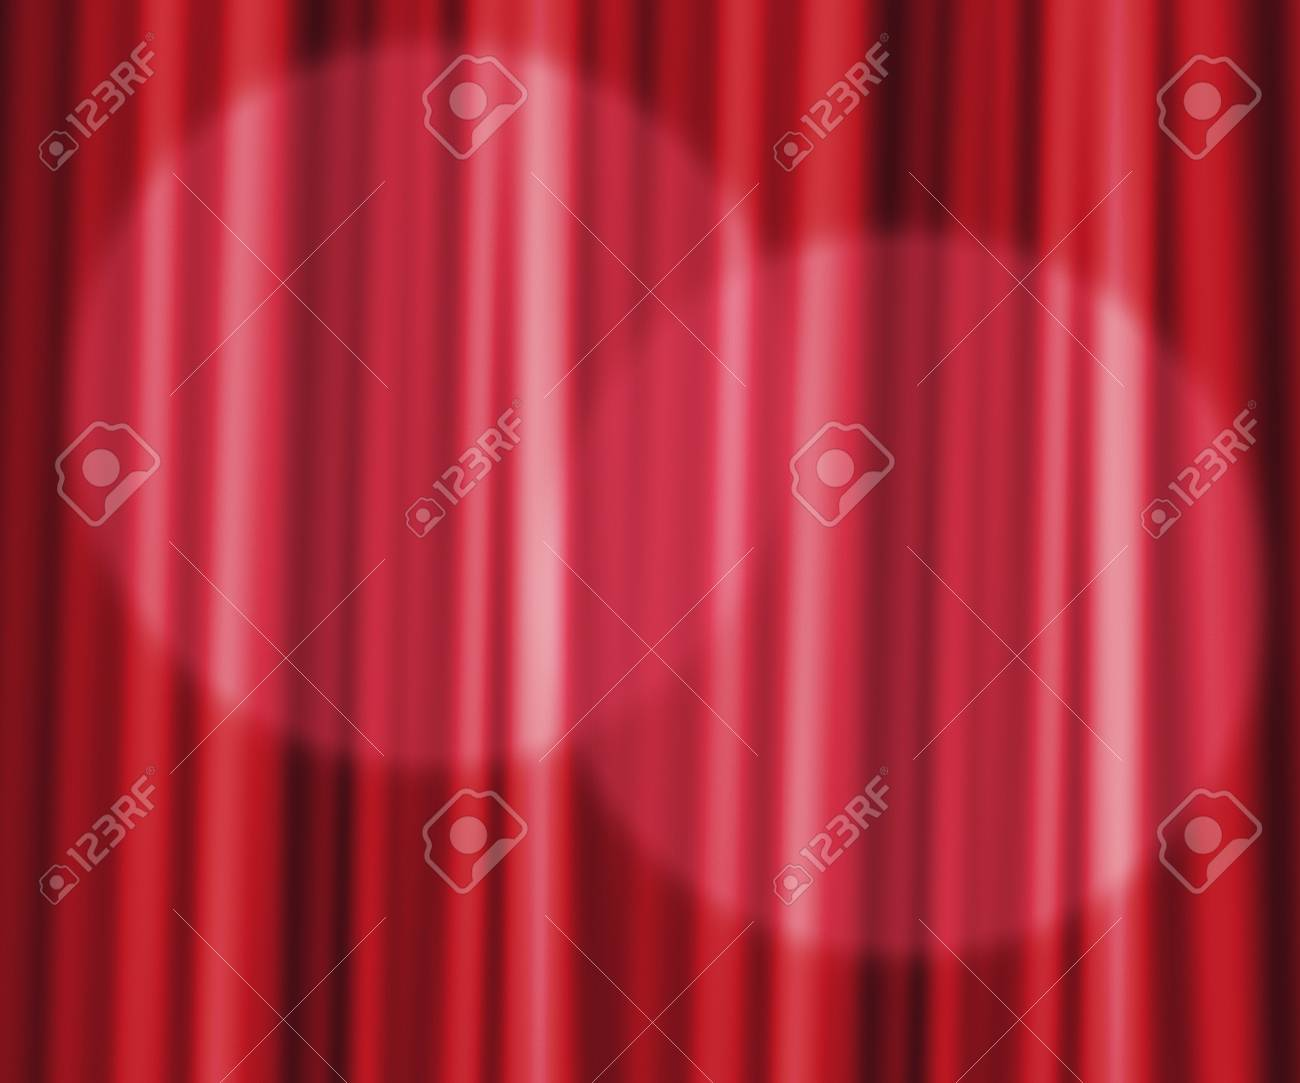 Red Curtain Photographic Backdrop Stock Photo